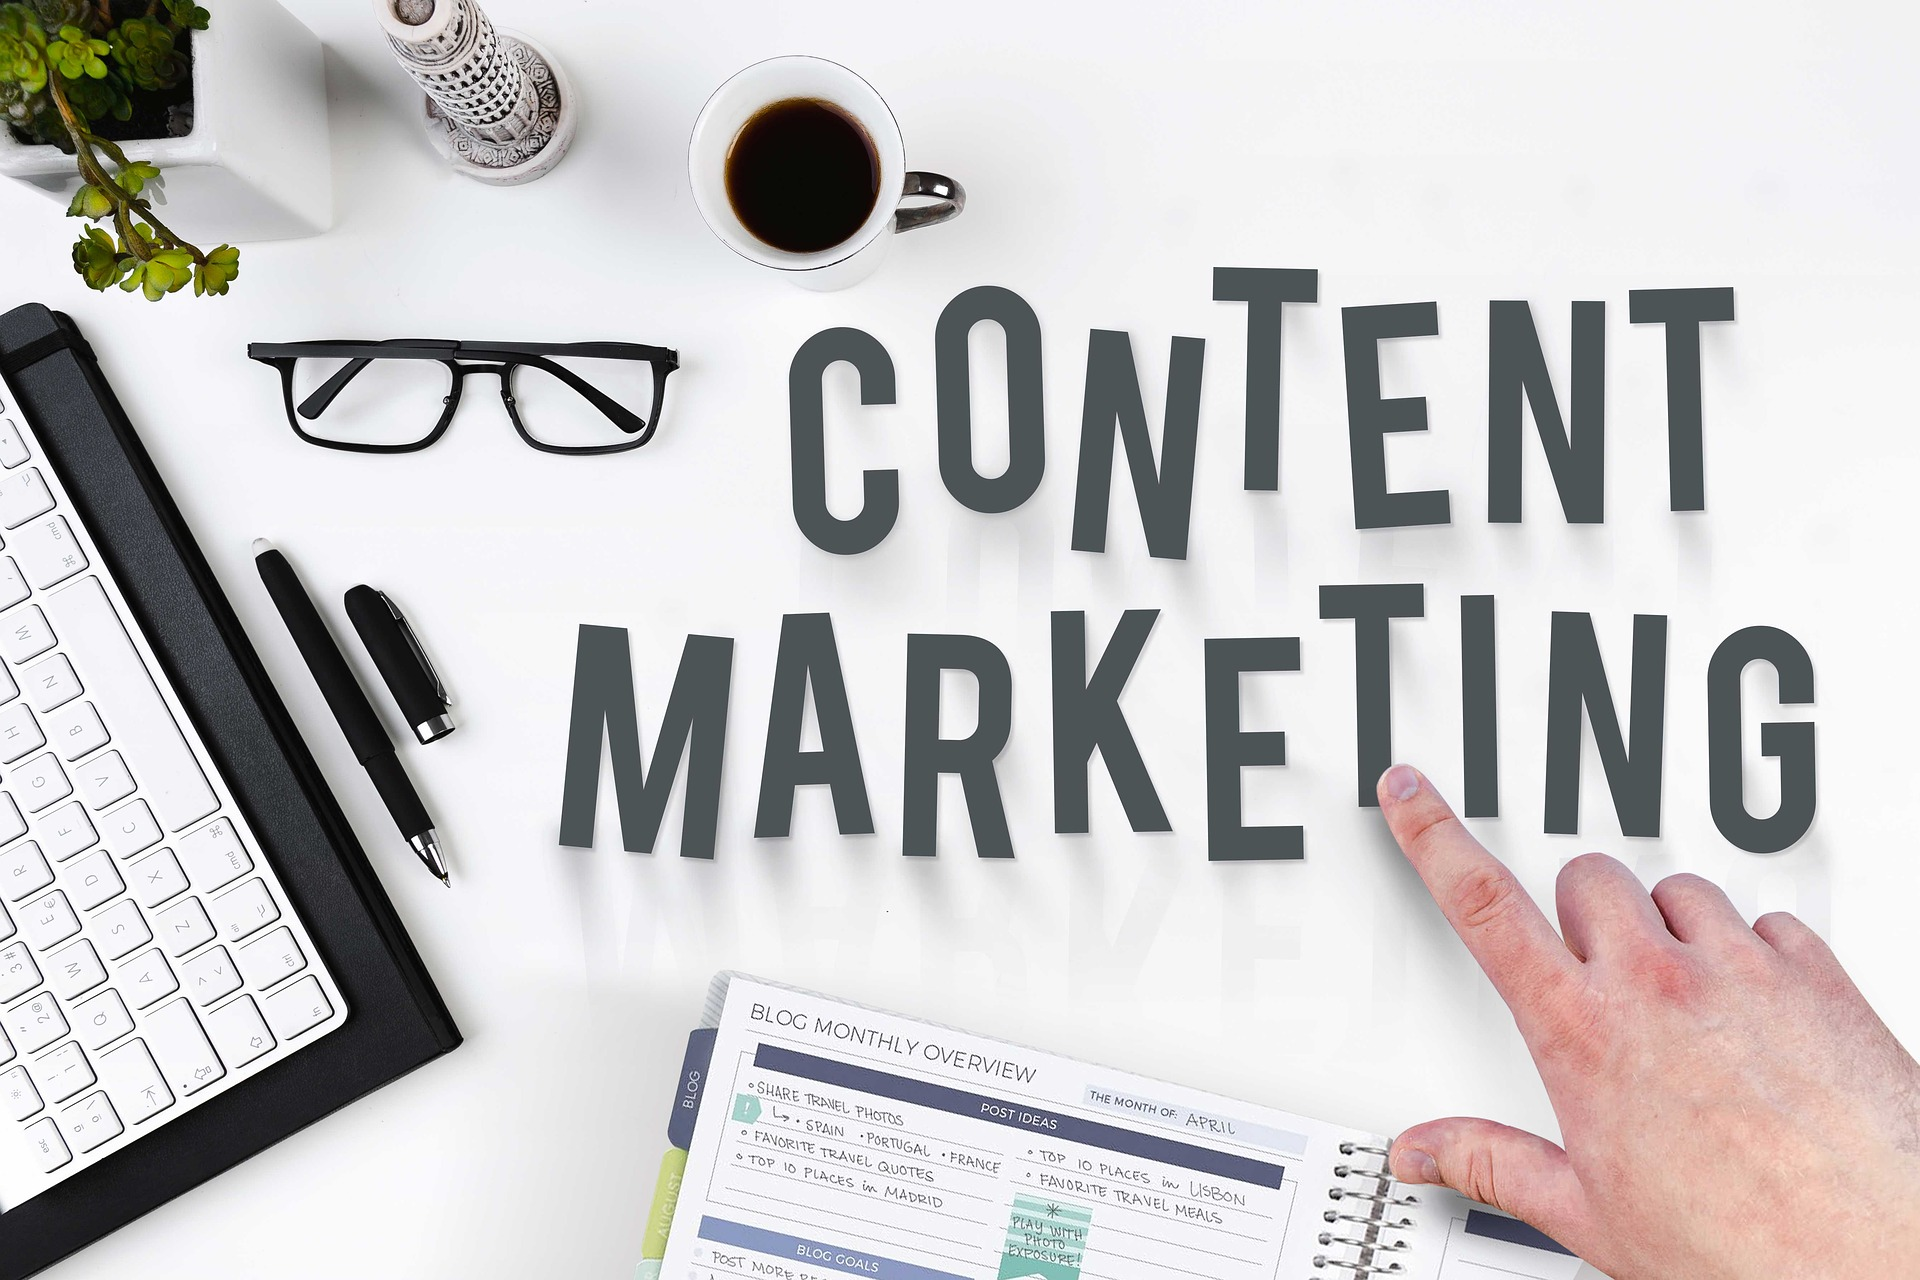 tulisan content marketing di atas meja dengan background warna putih, kaca mata, segelas kopi, keyboard laptop